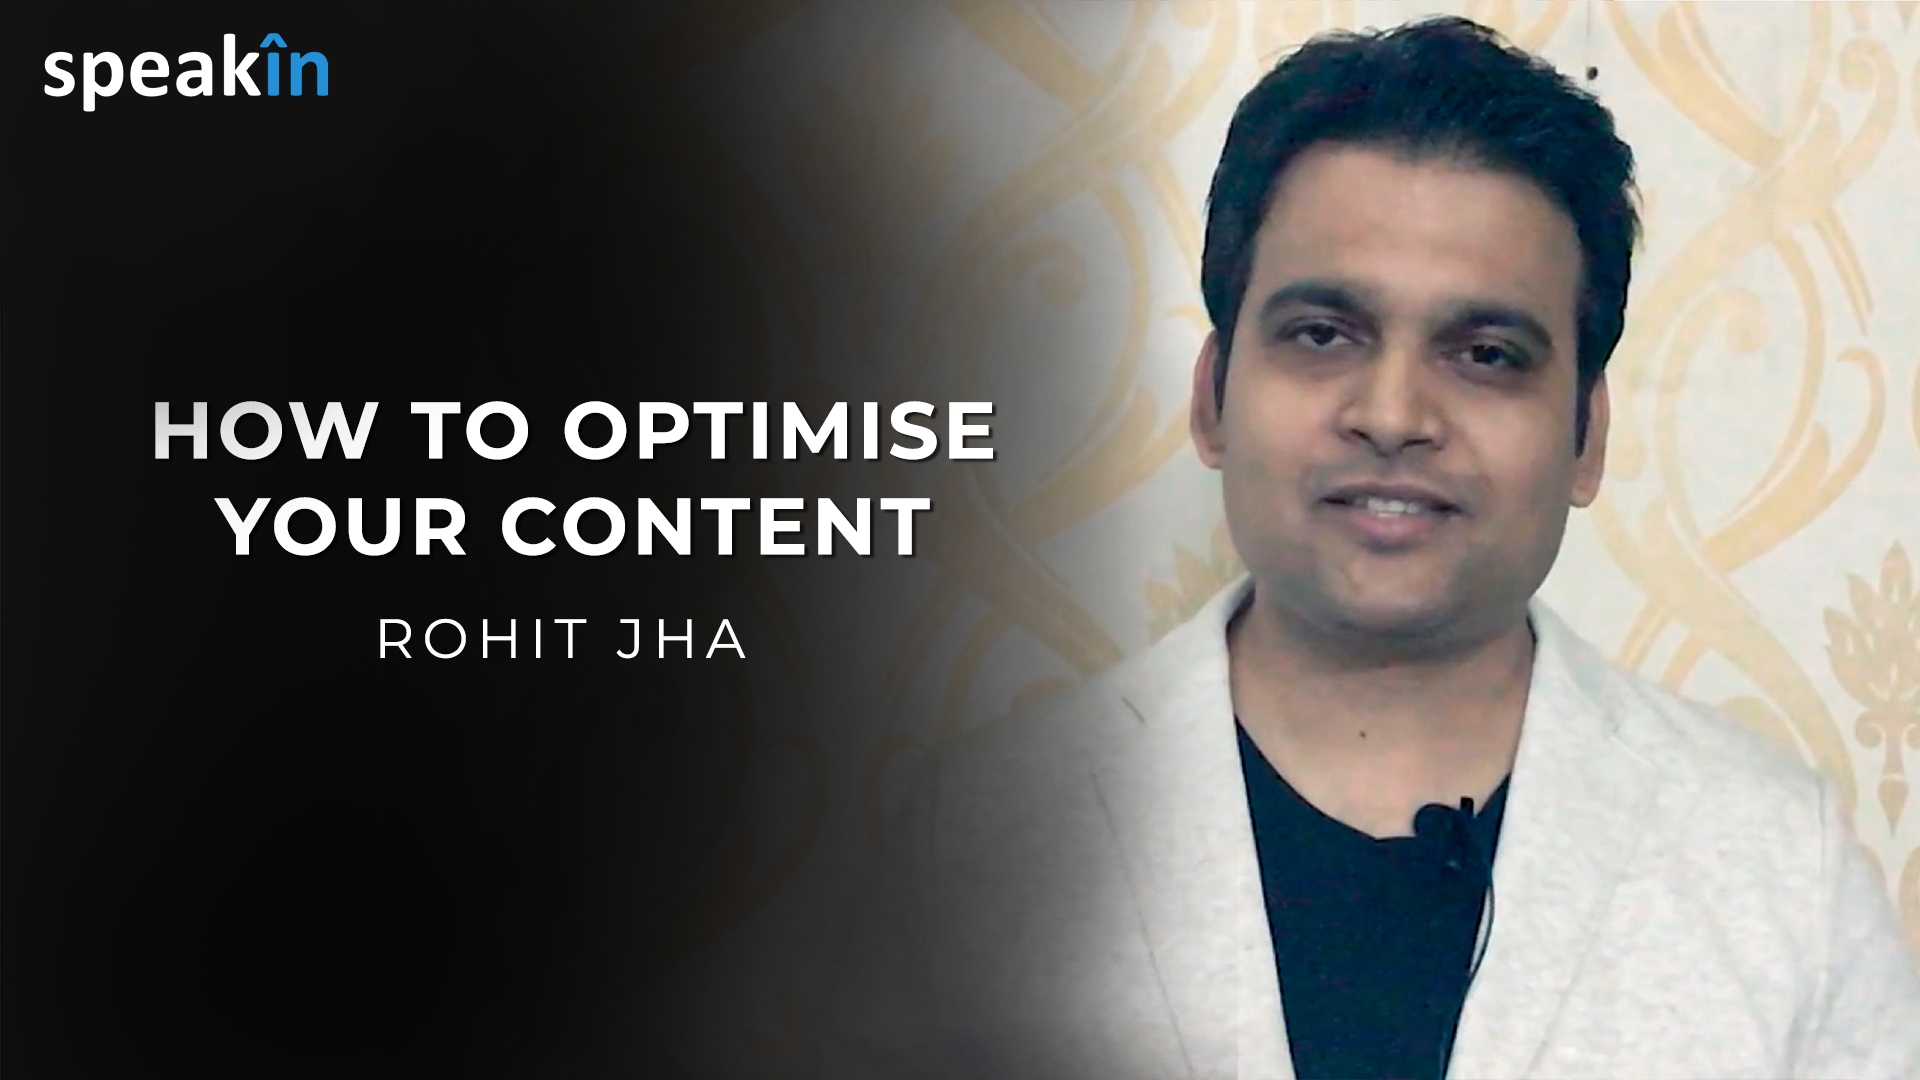 How to optimize your content, to rank number 1 on google